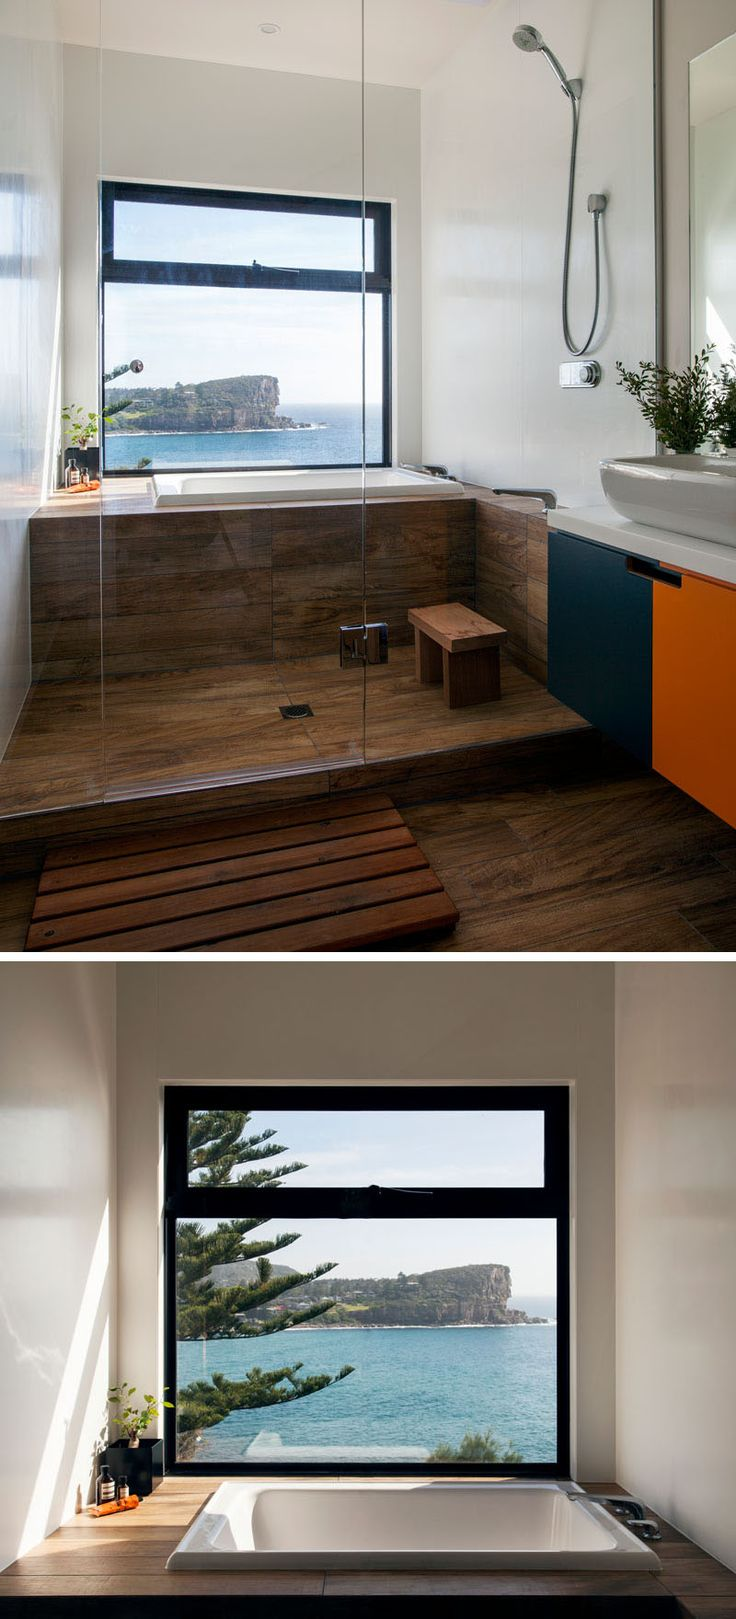 best 25 japanese bath house ideas only on pinterest japanese this bathroom has a large window that provides an uninterrupted view of the ocean and beach